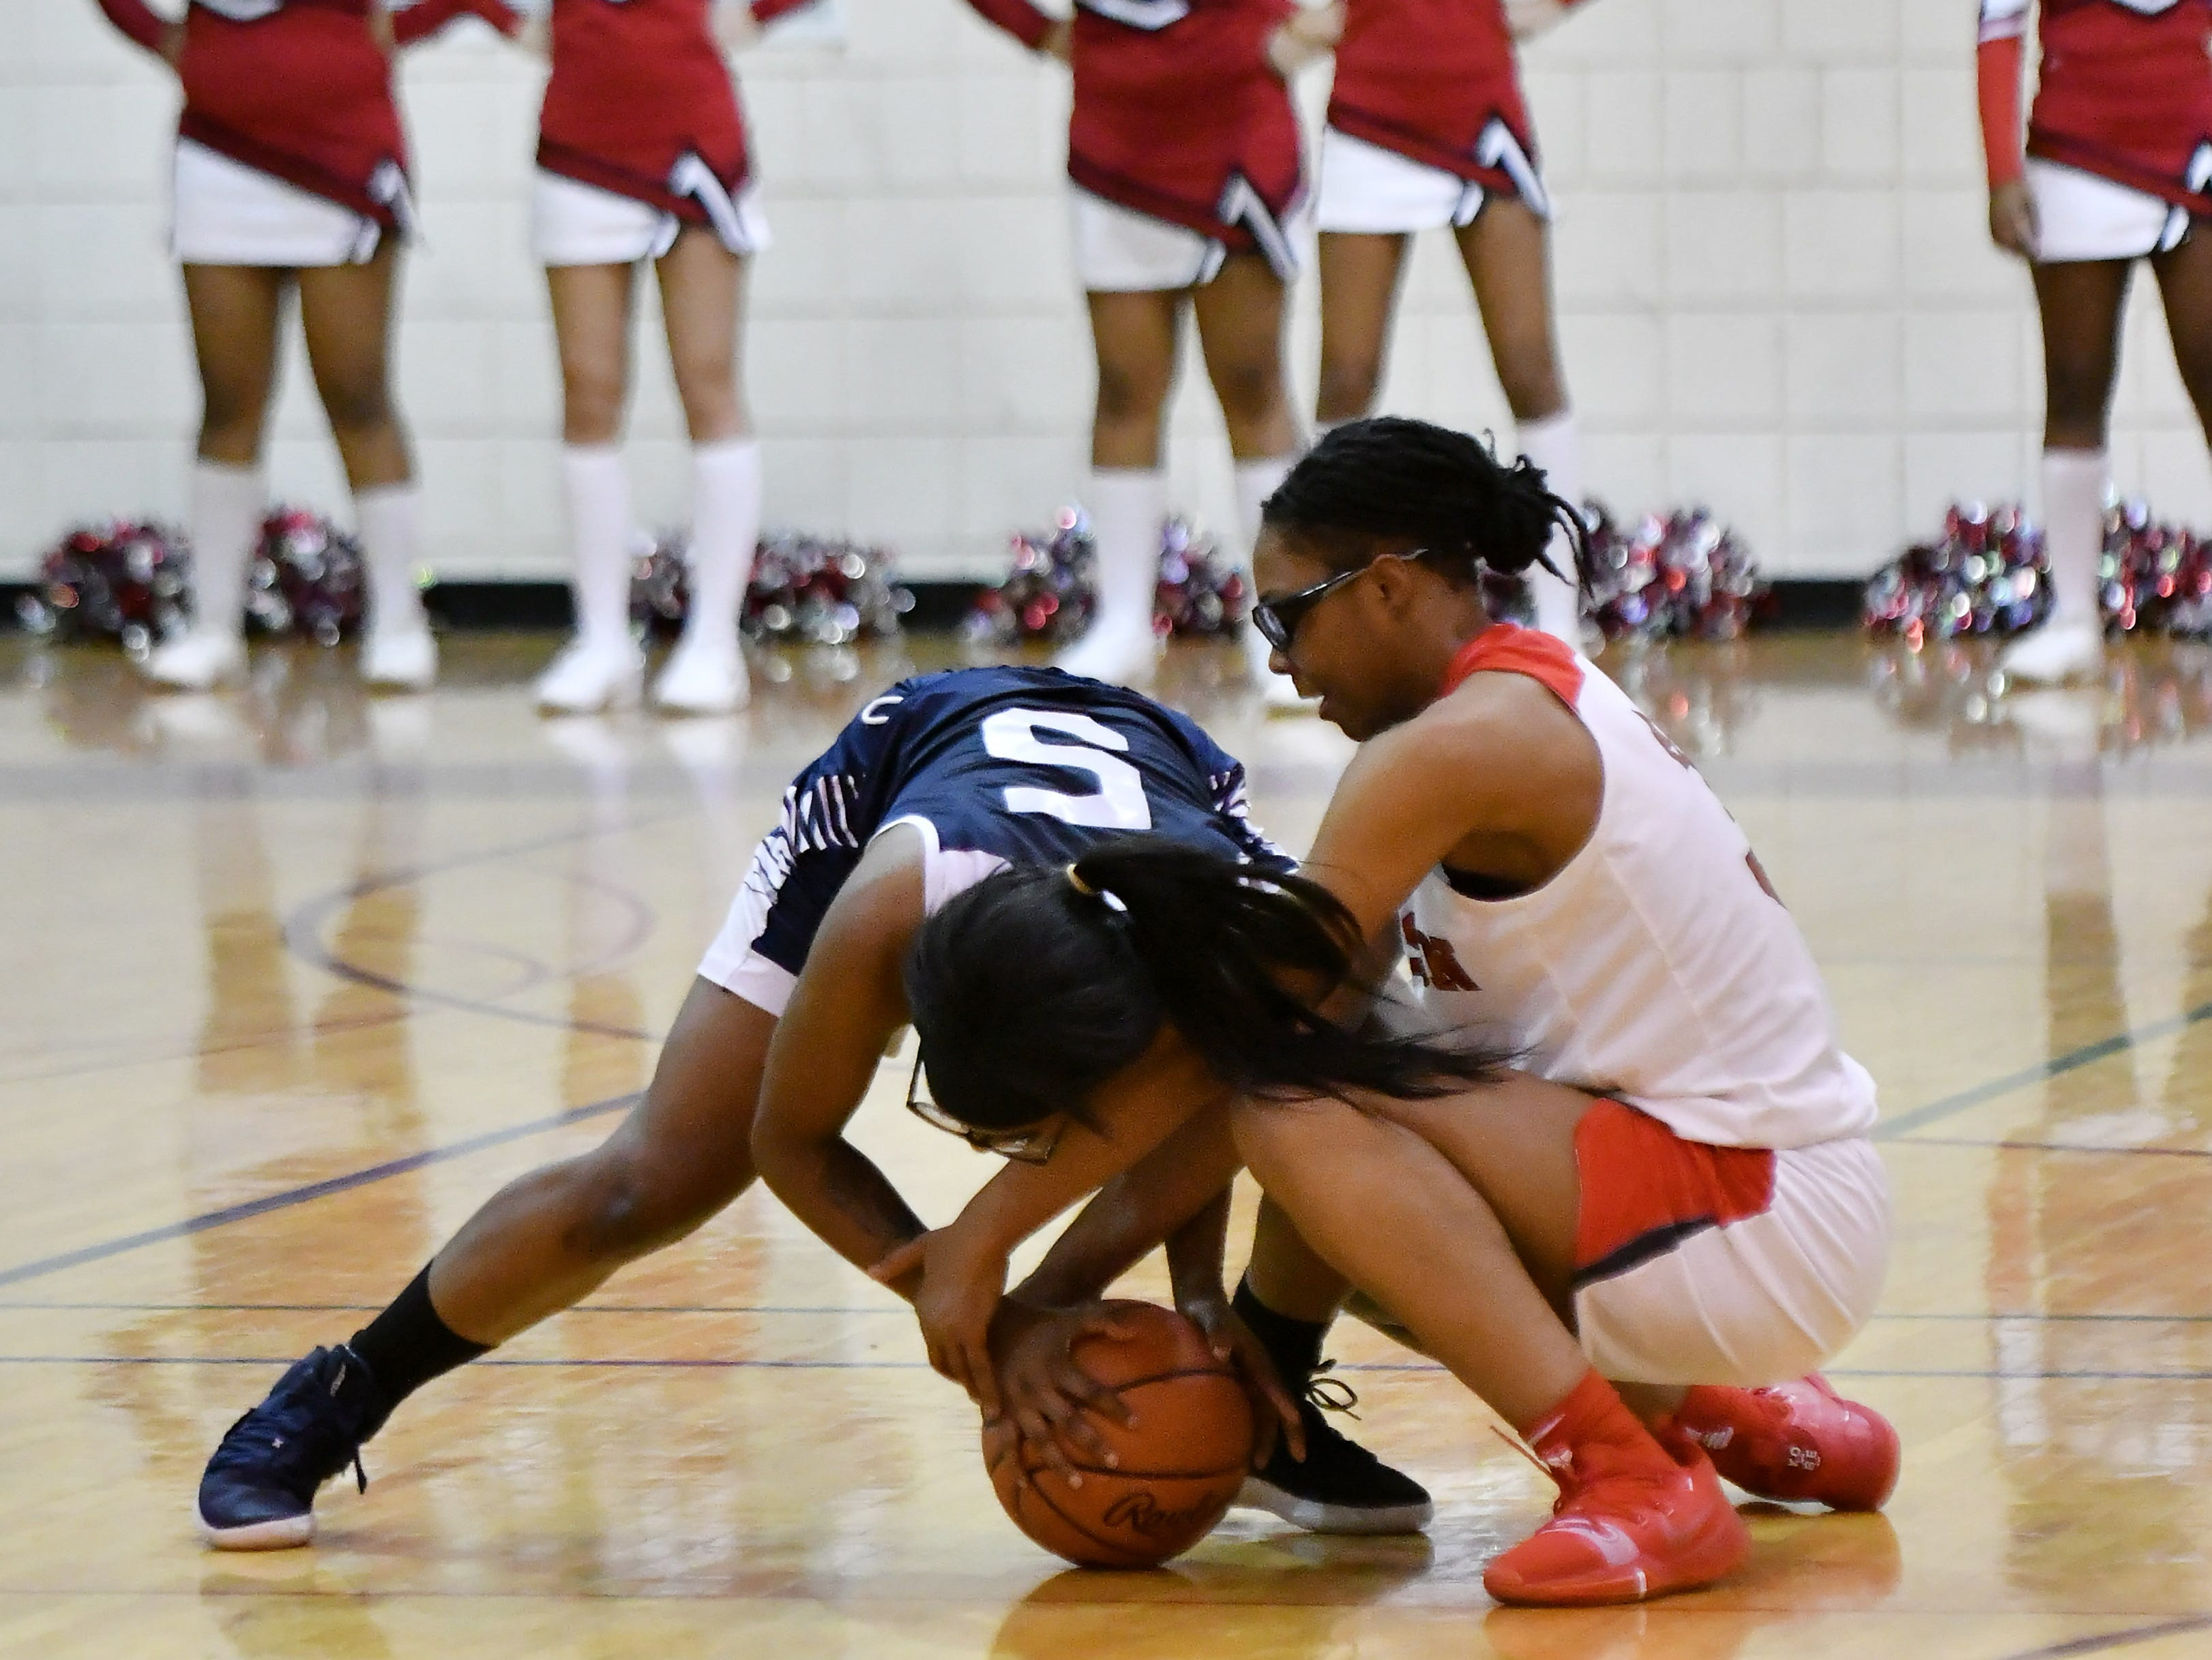 Chandler Park's Anaya Kennedy (5) and Detroit Edison's Gabrielle Elliot battle for the ball in the first half.